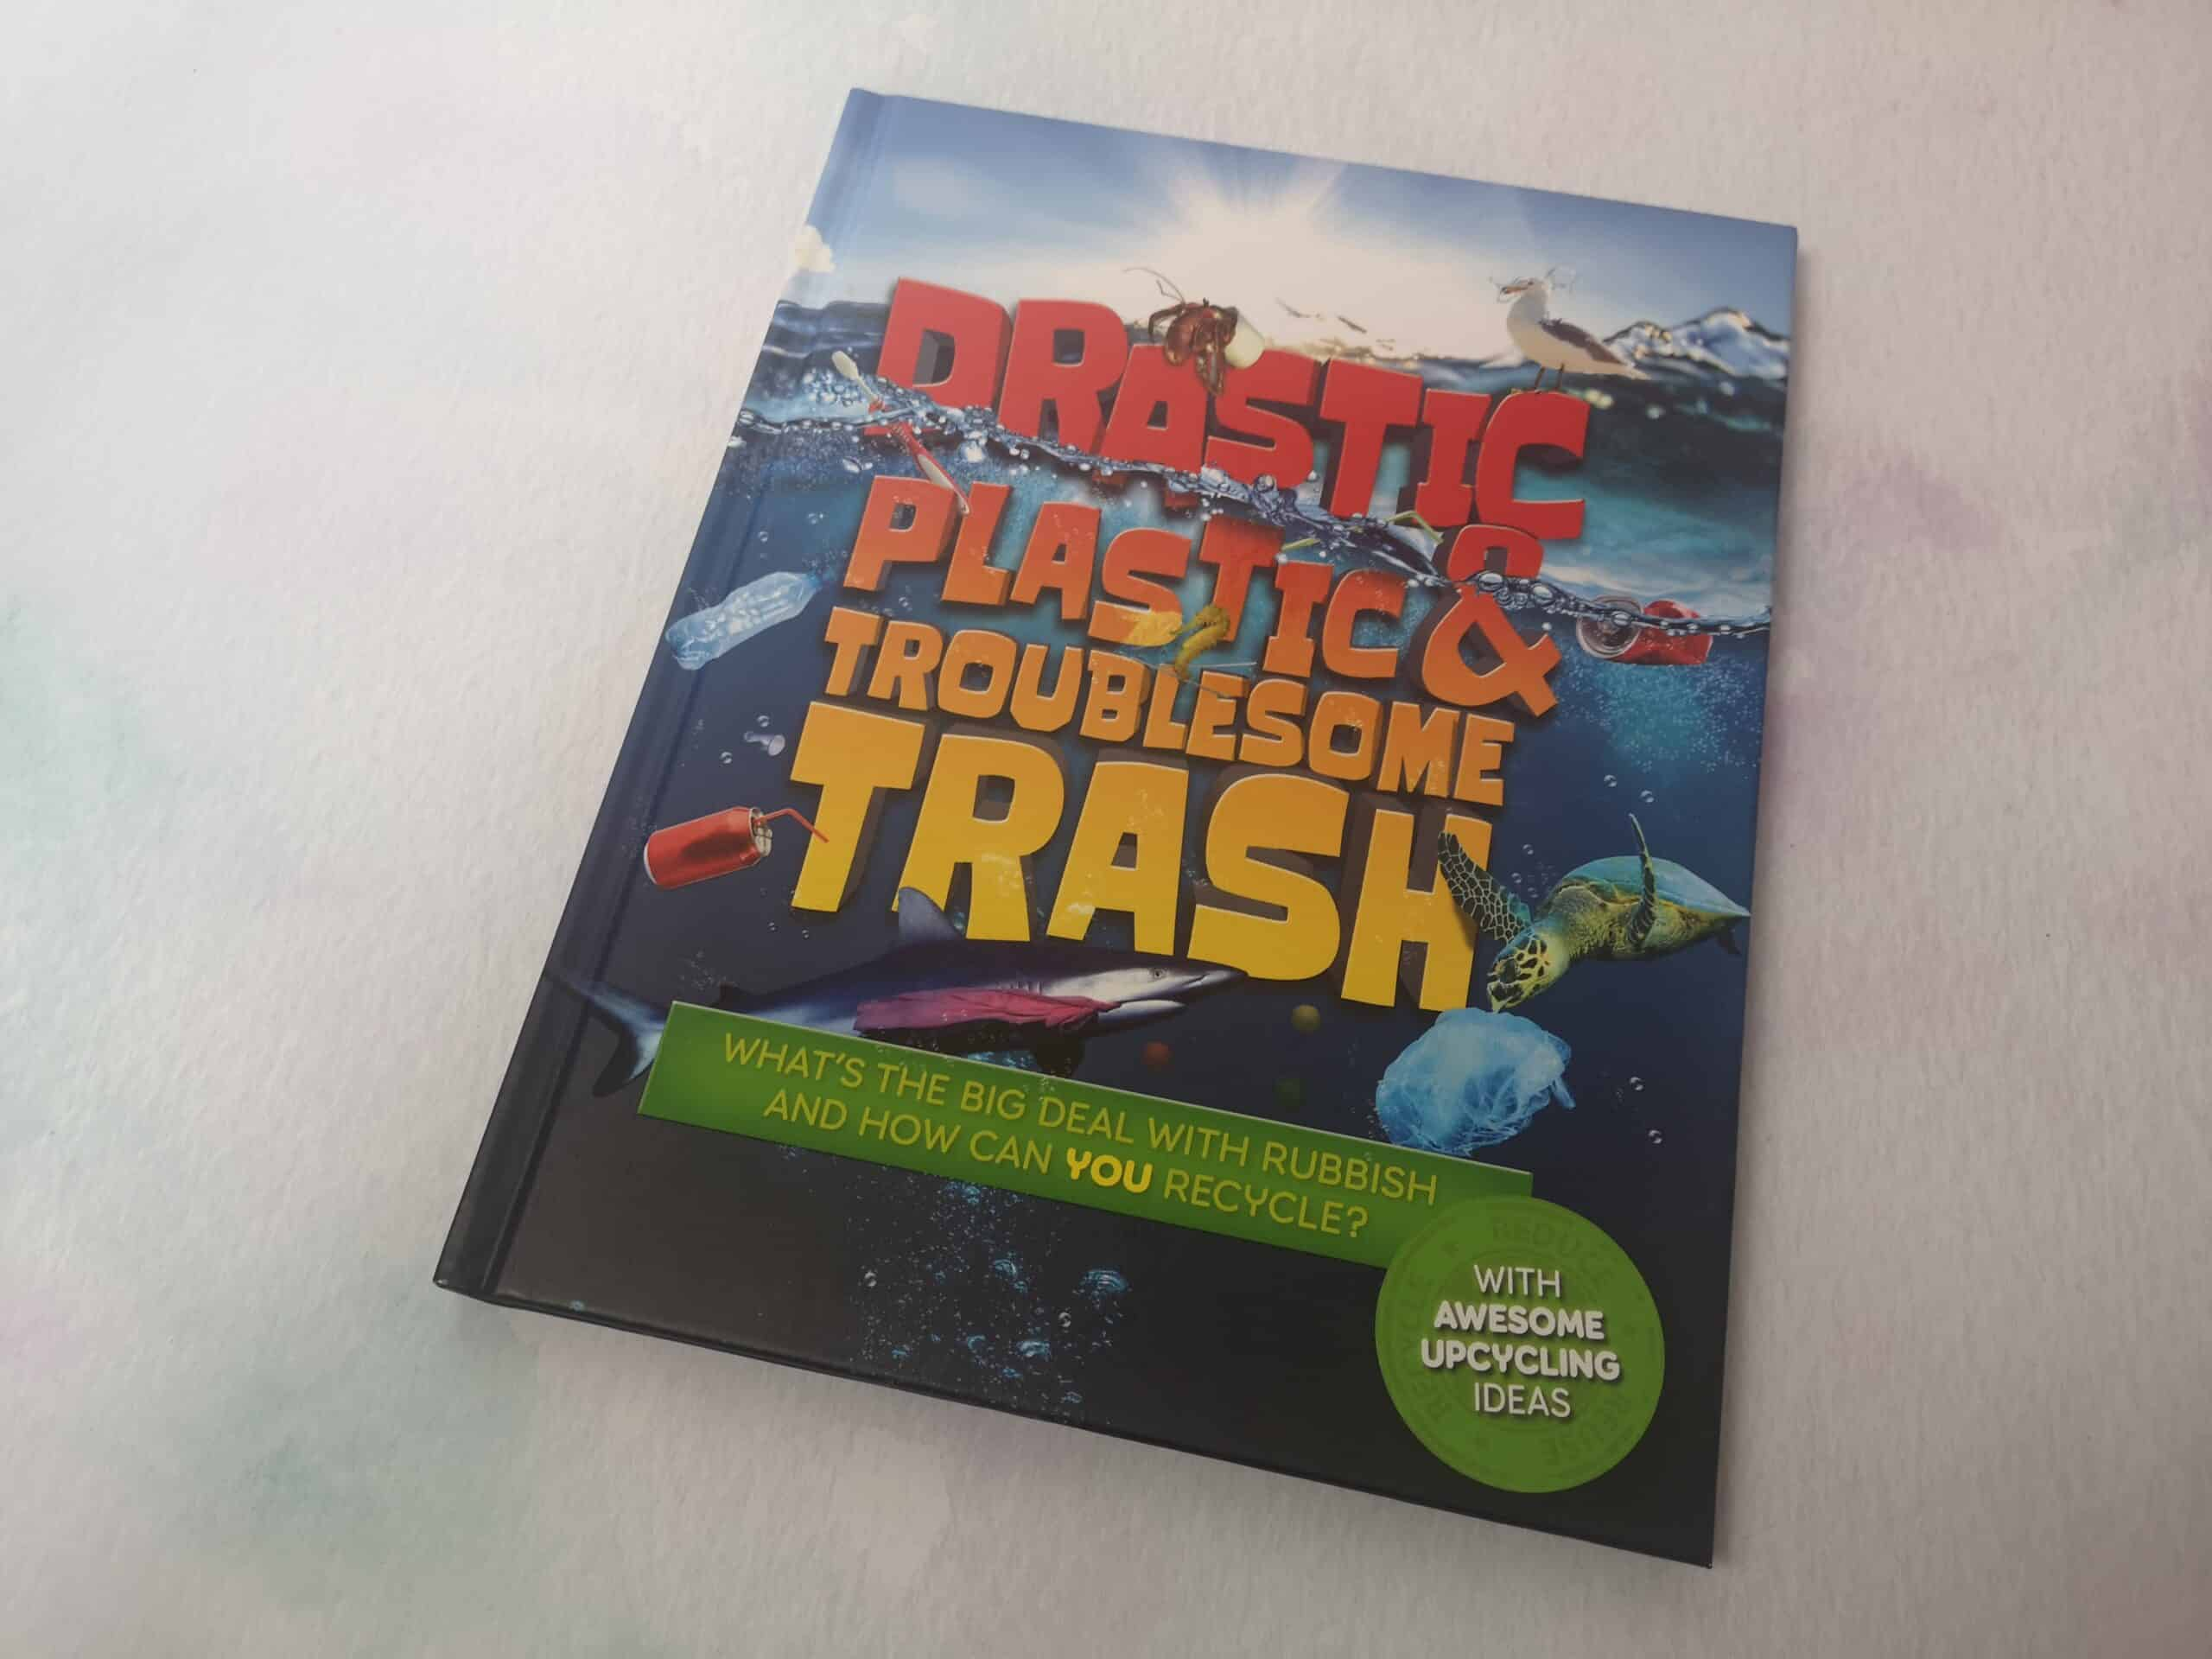 Drastic Plastic And Troublesome Trash